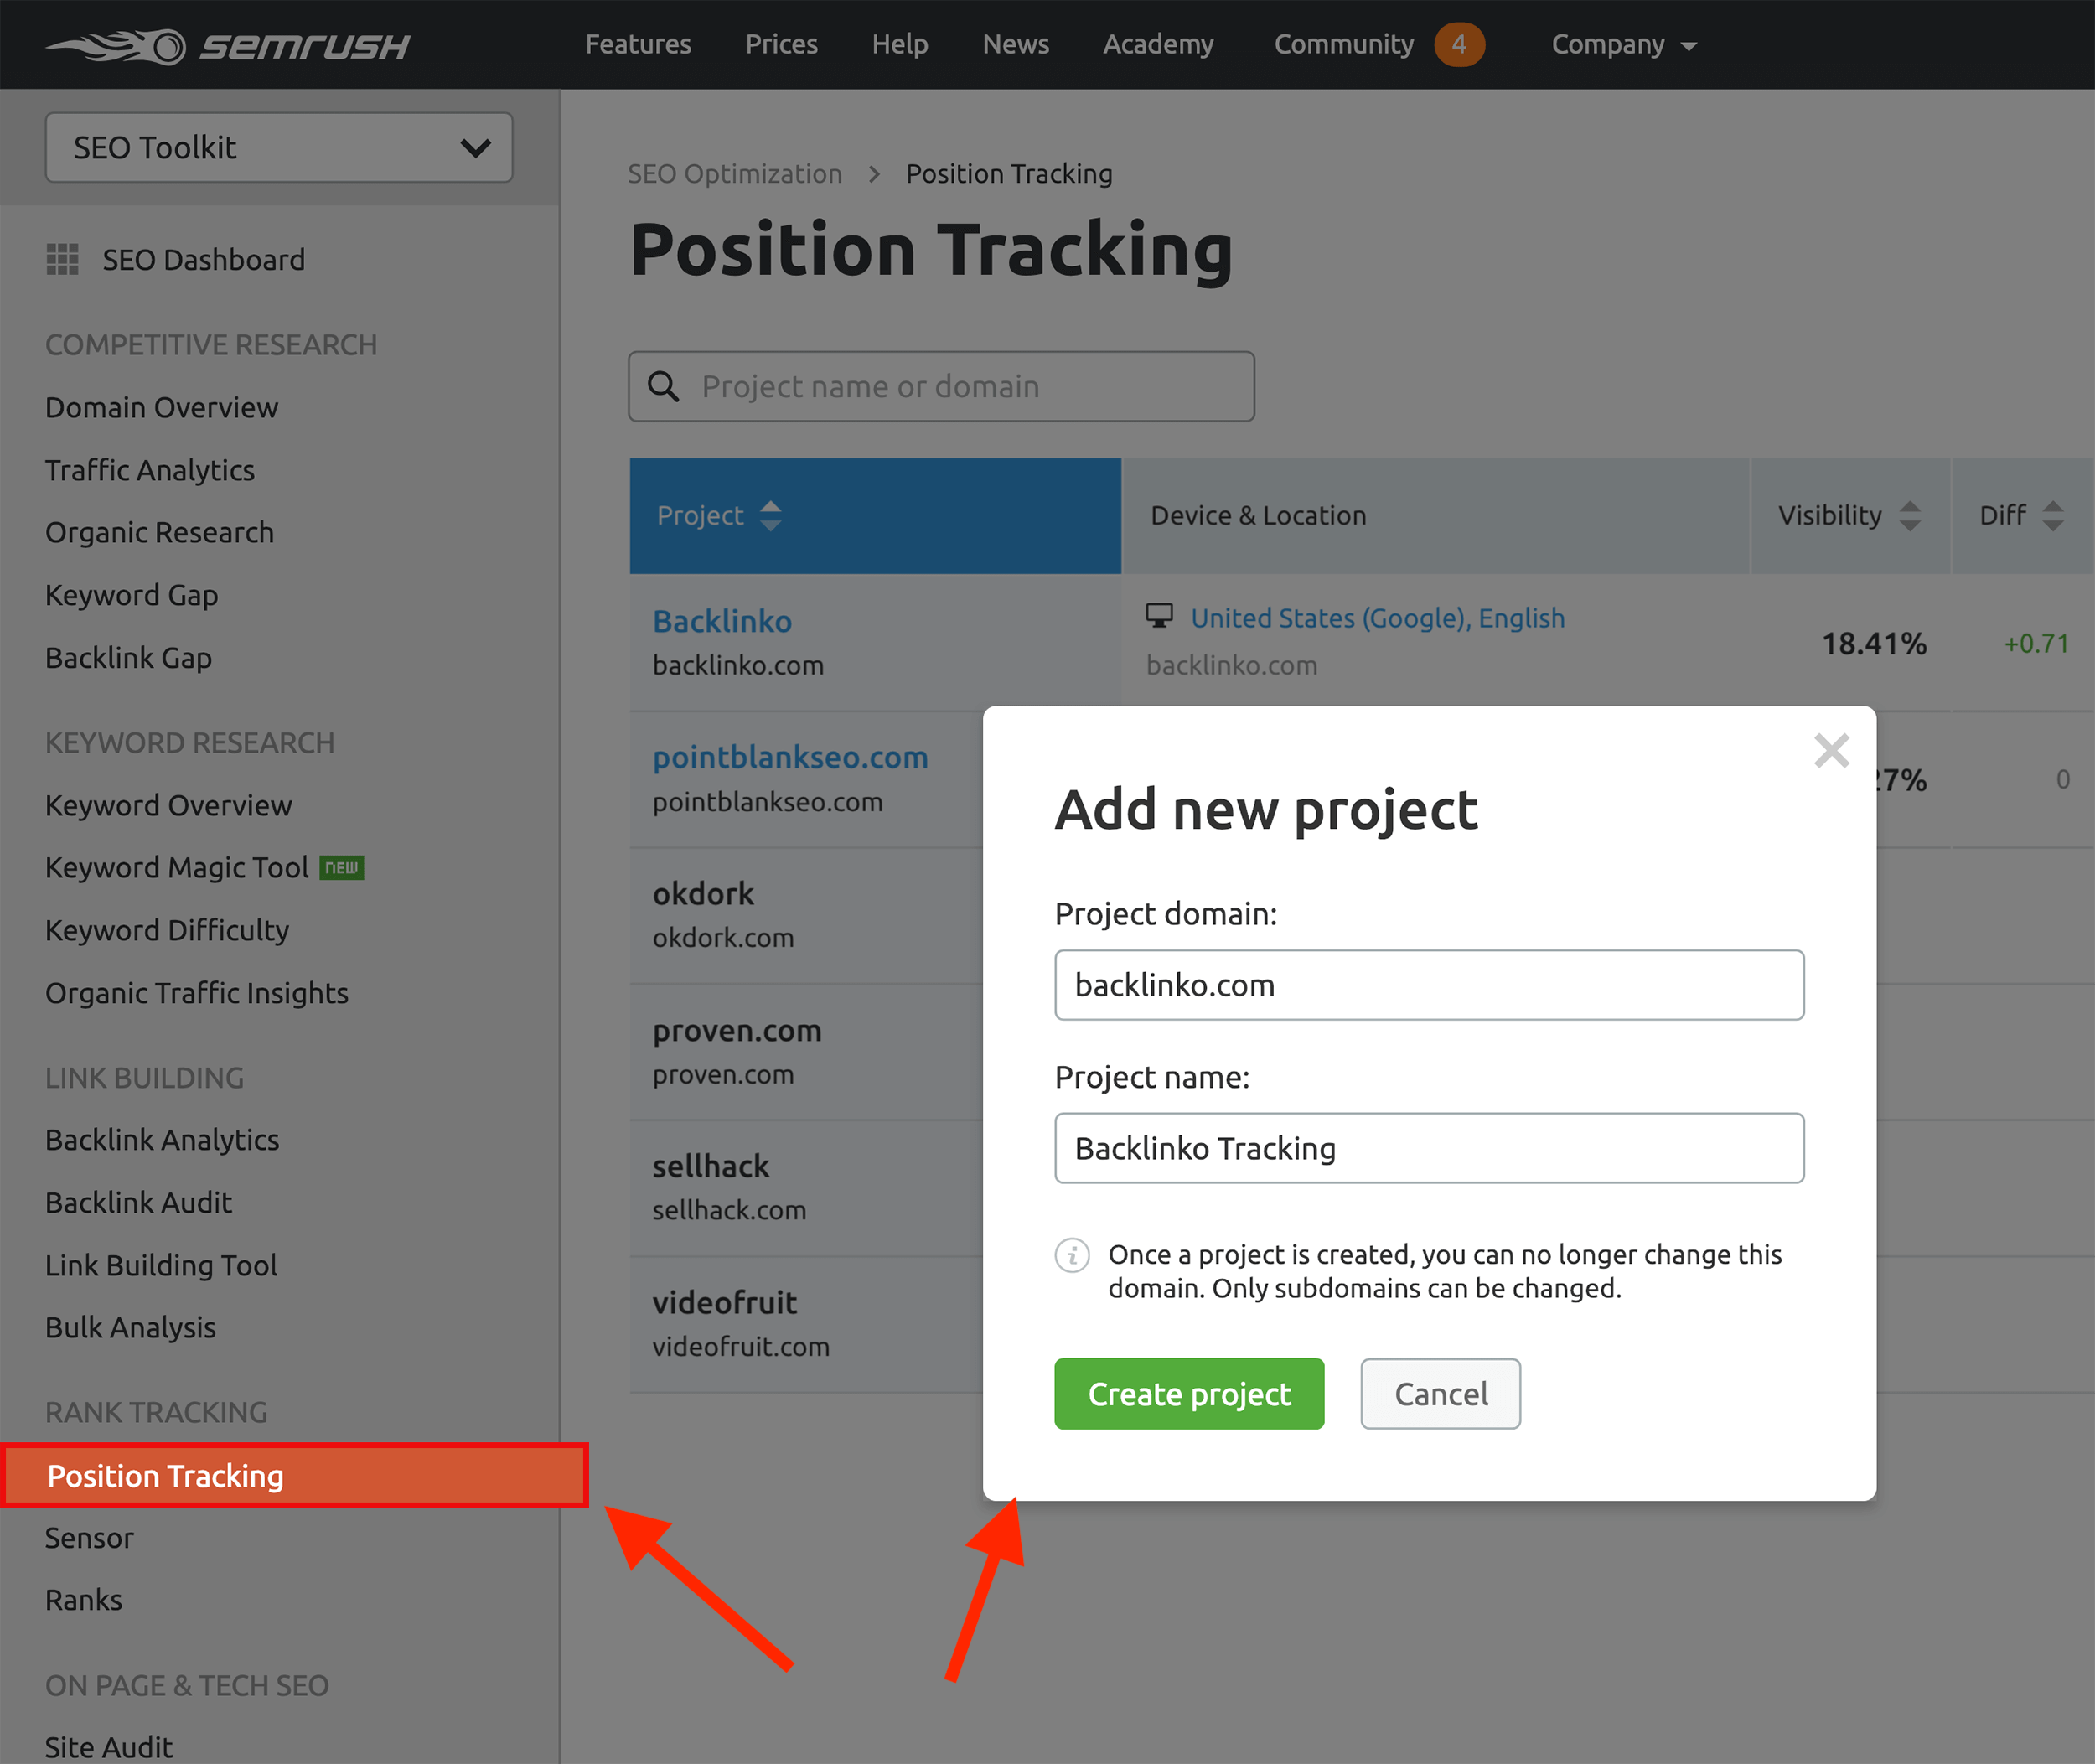 SEMRush – Position tracking – New project